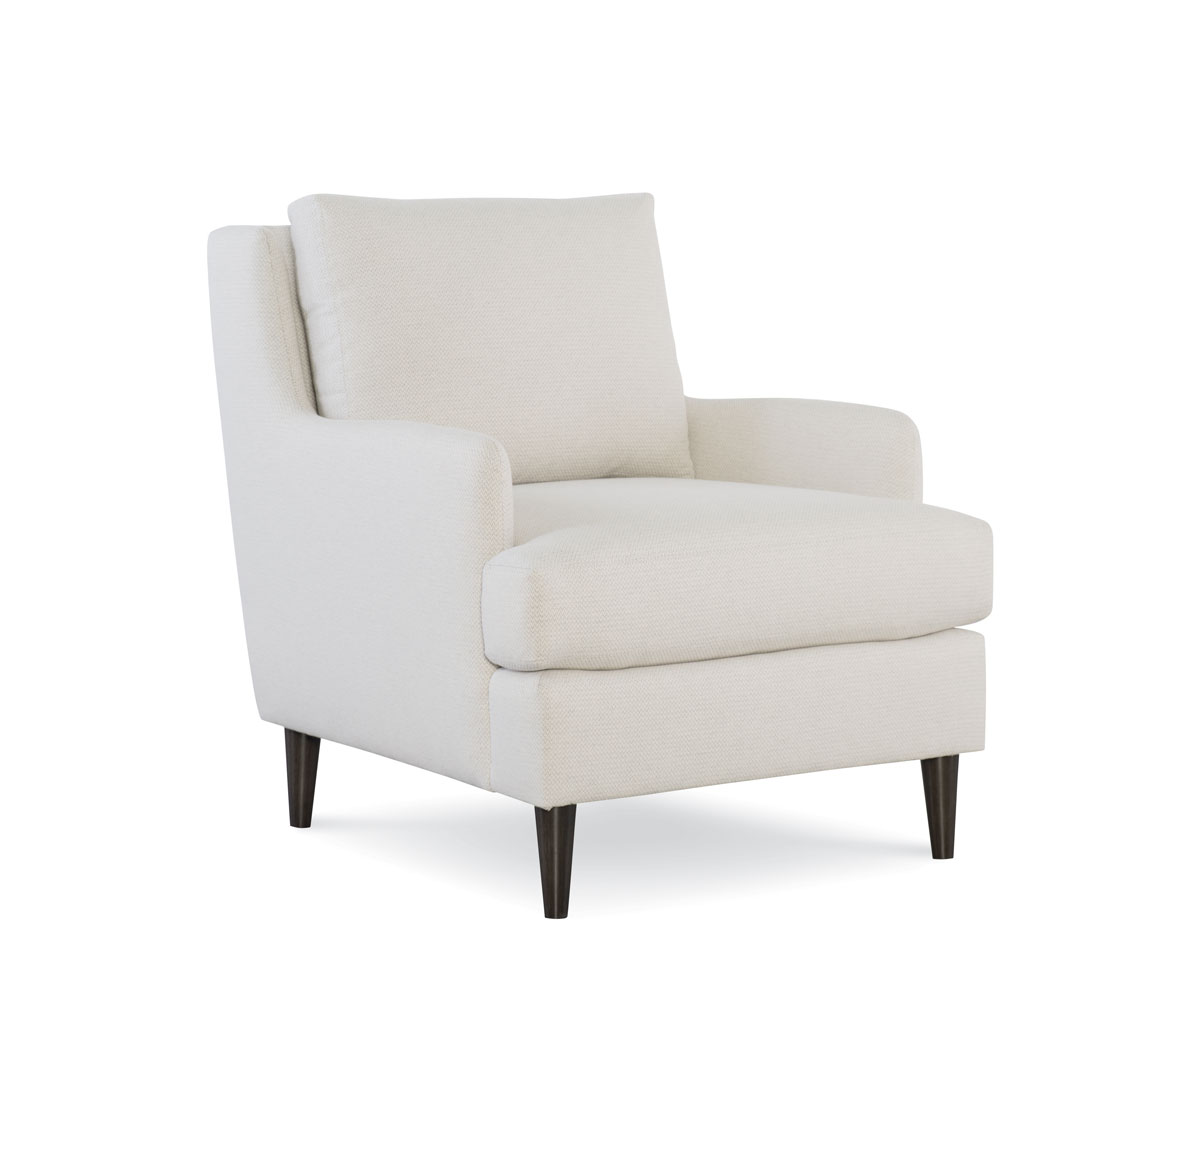 CR Laine 2820-05 Remy Chair